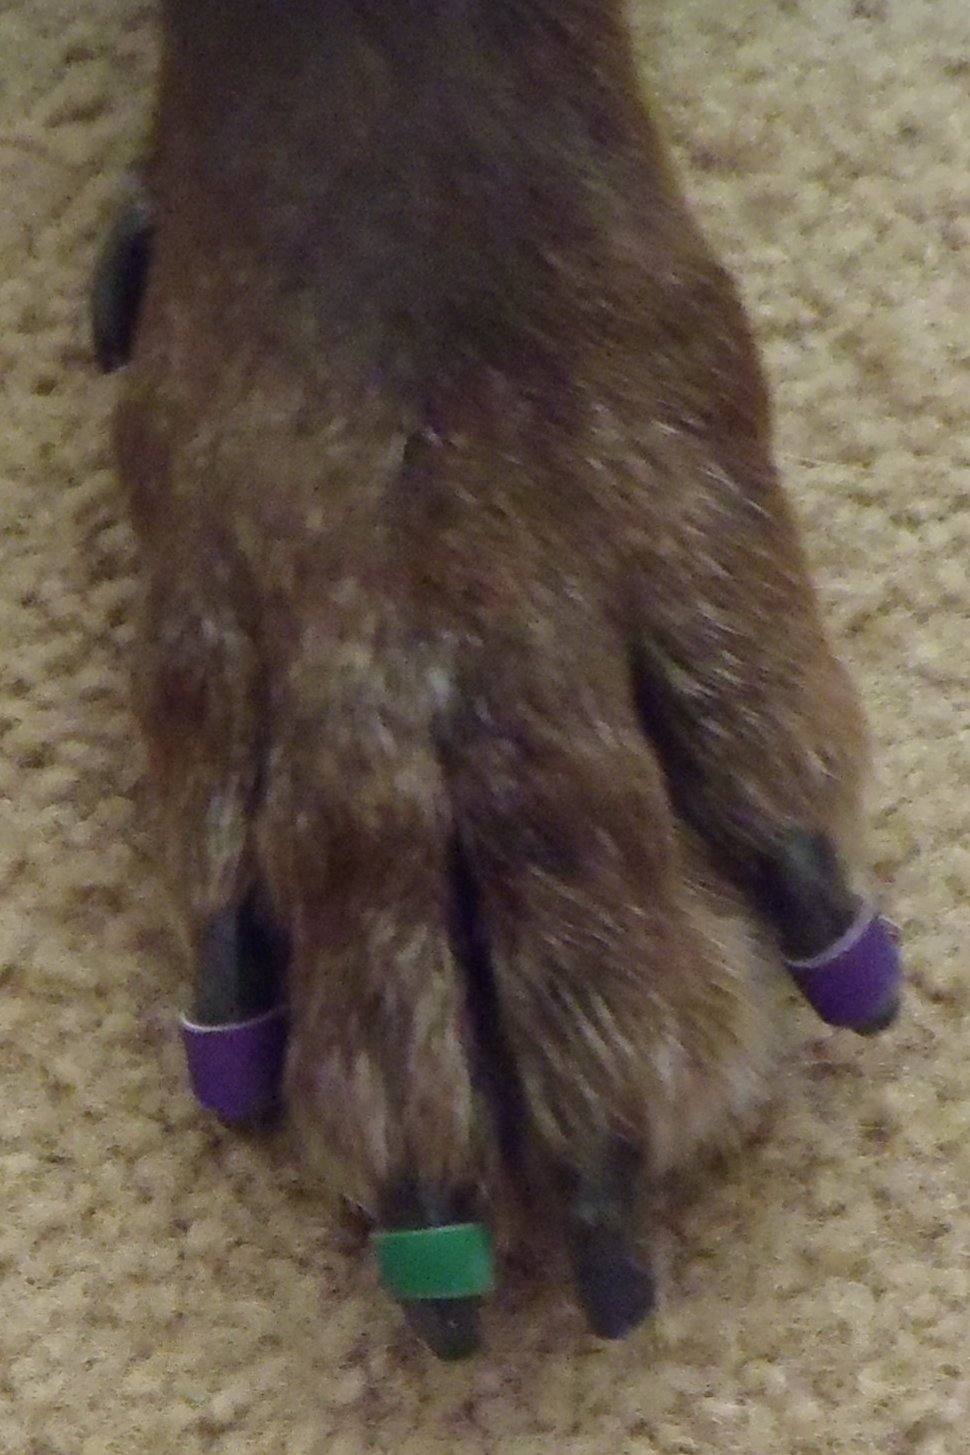 Becky S Blog Lots Of Fun Shtuff Review Of Dr Buzby S Toe Grips